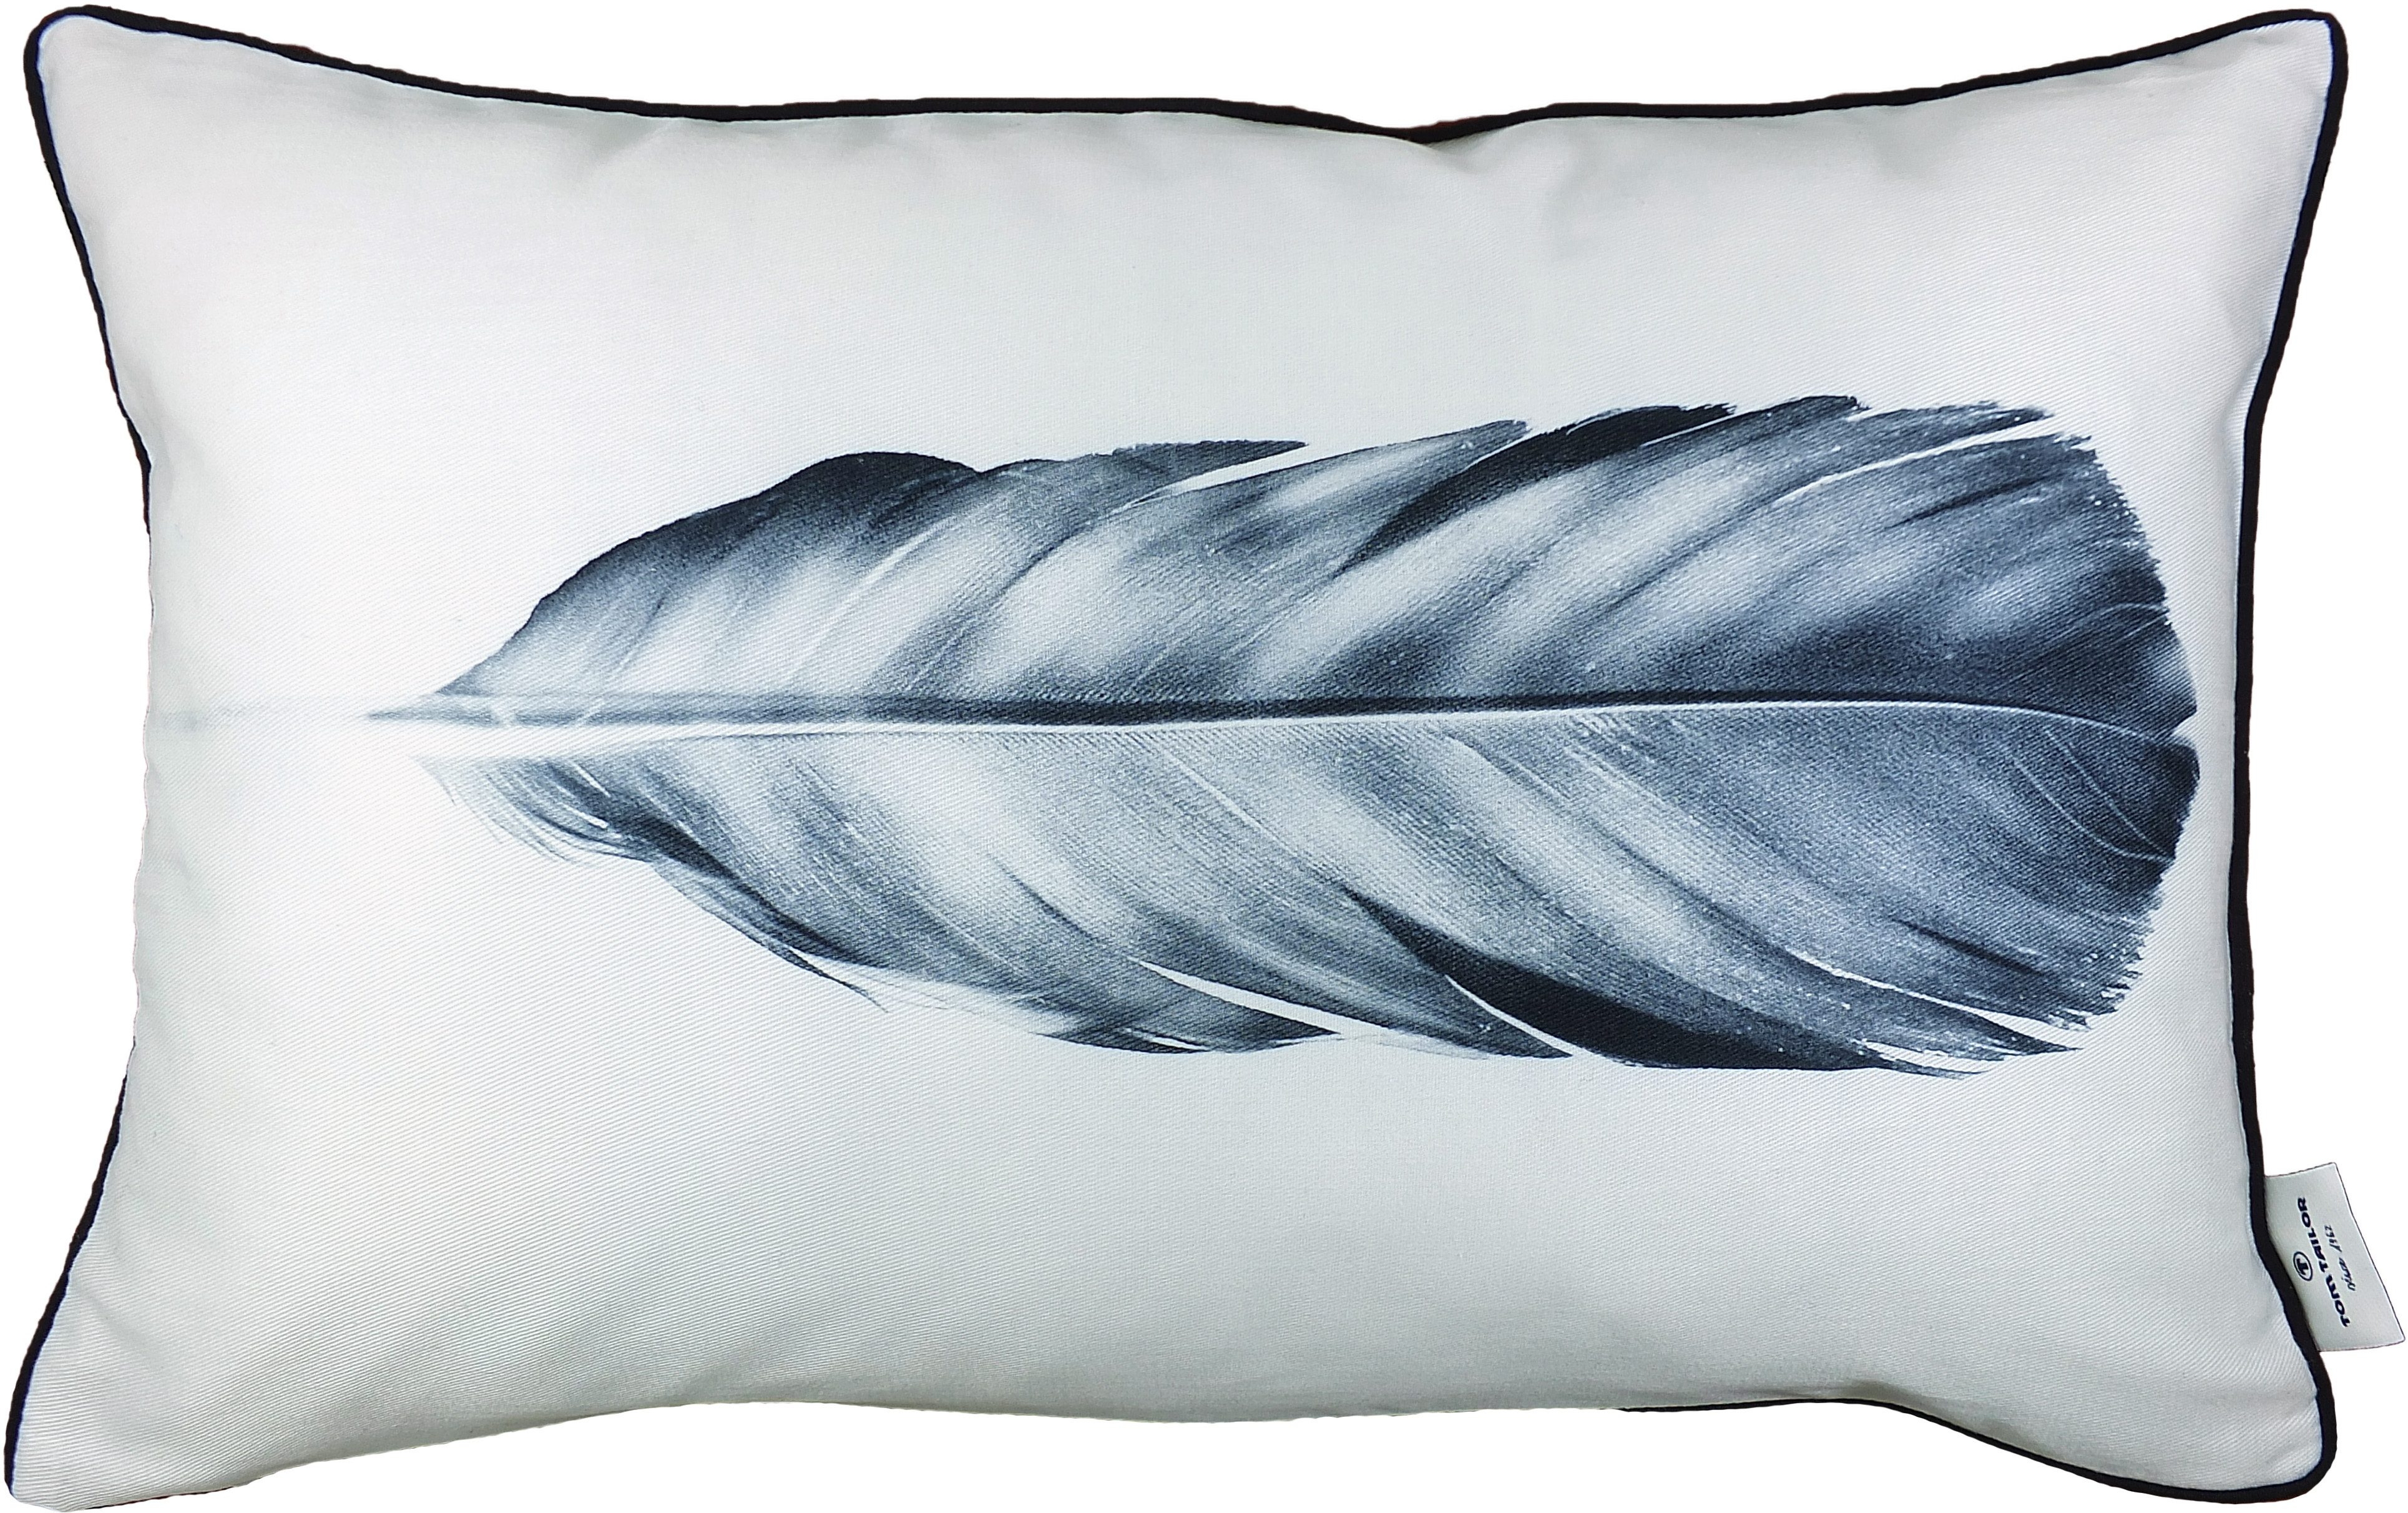 Kissenhüllen, Tom tailor, »Grey Feather« (1 Stück)